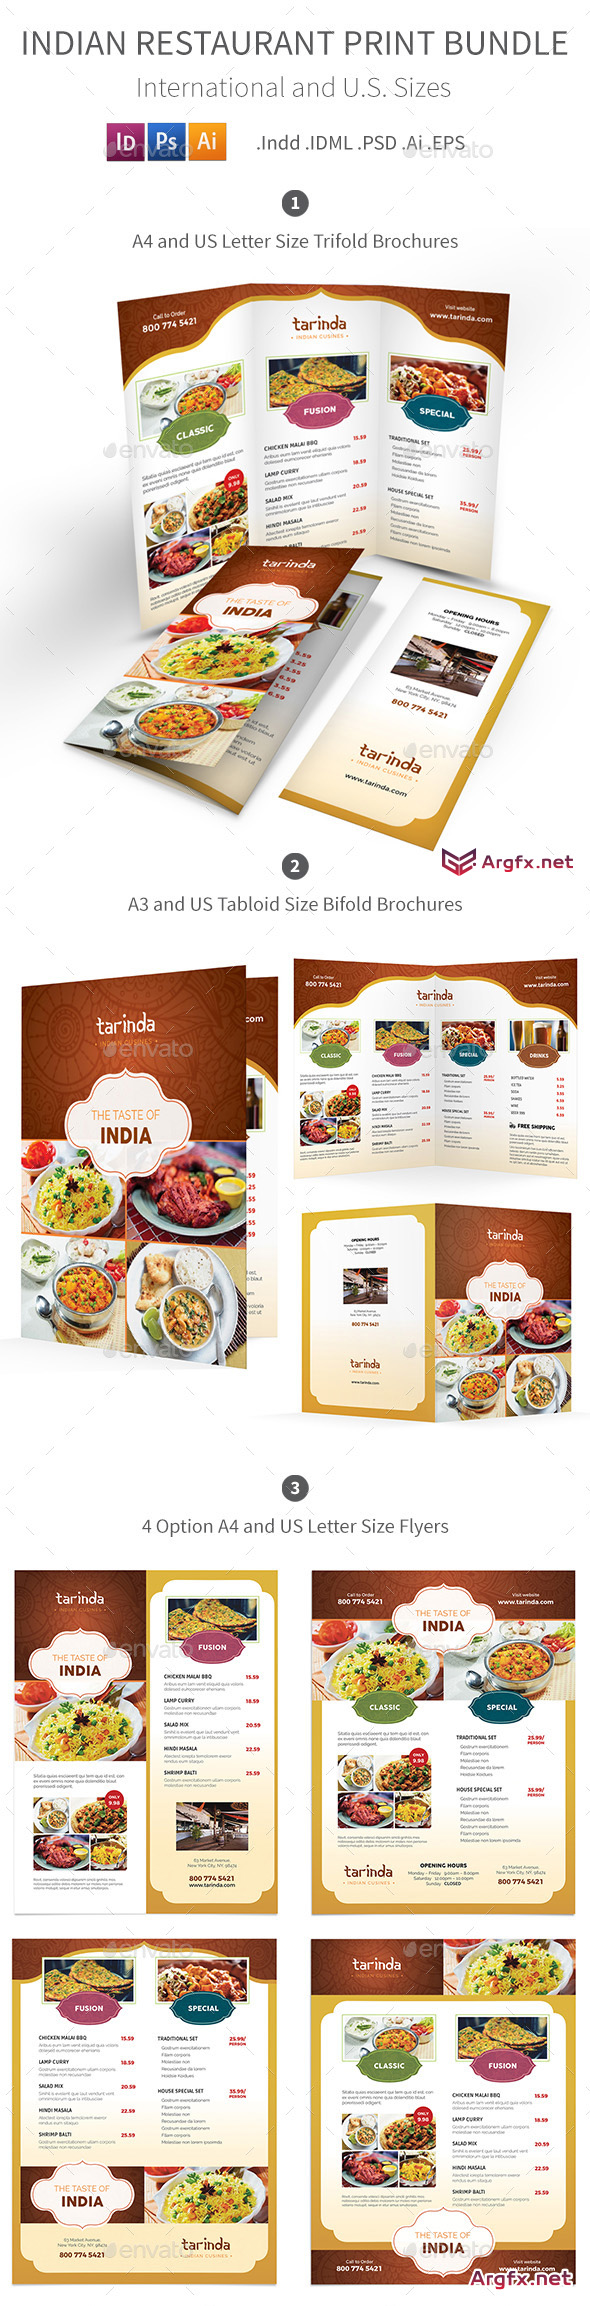 Indian Restaurant Menu Print Bundle - 19289137